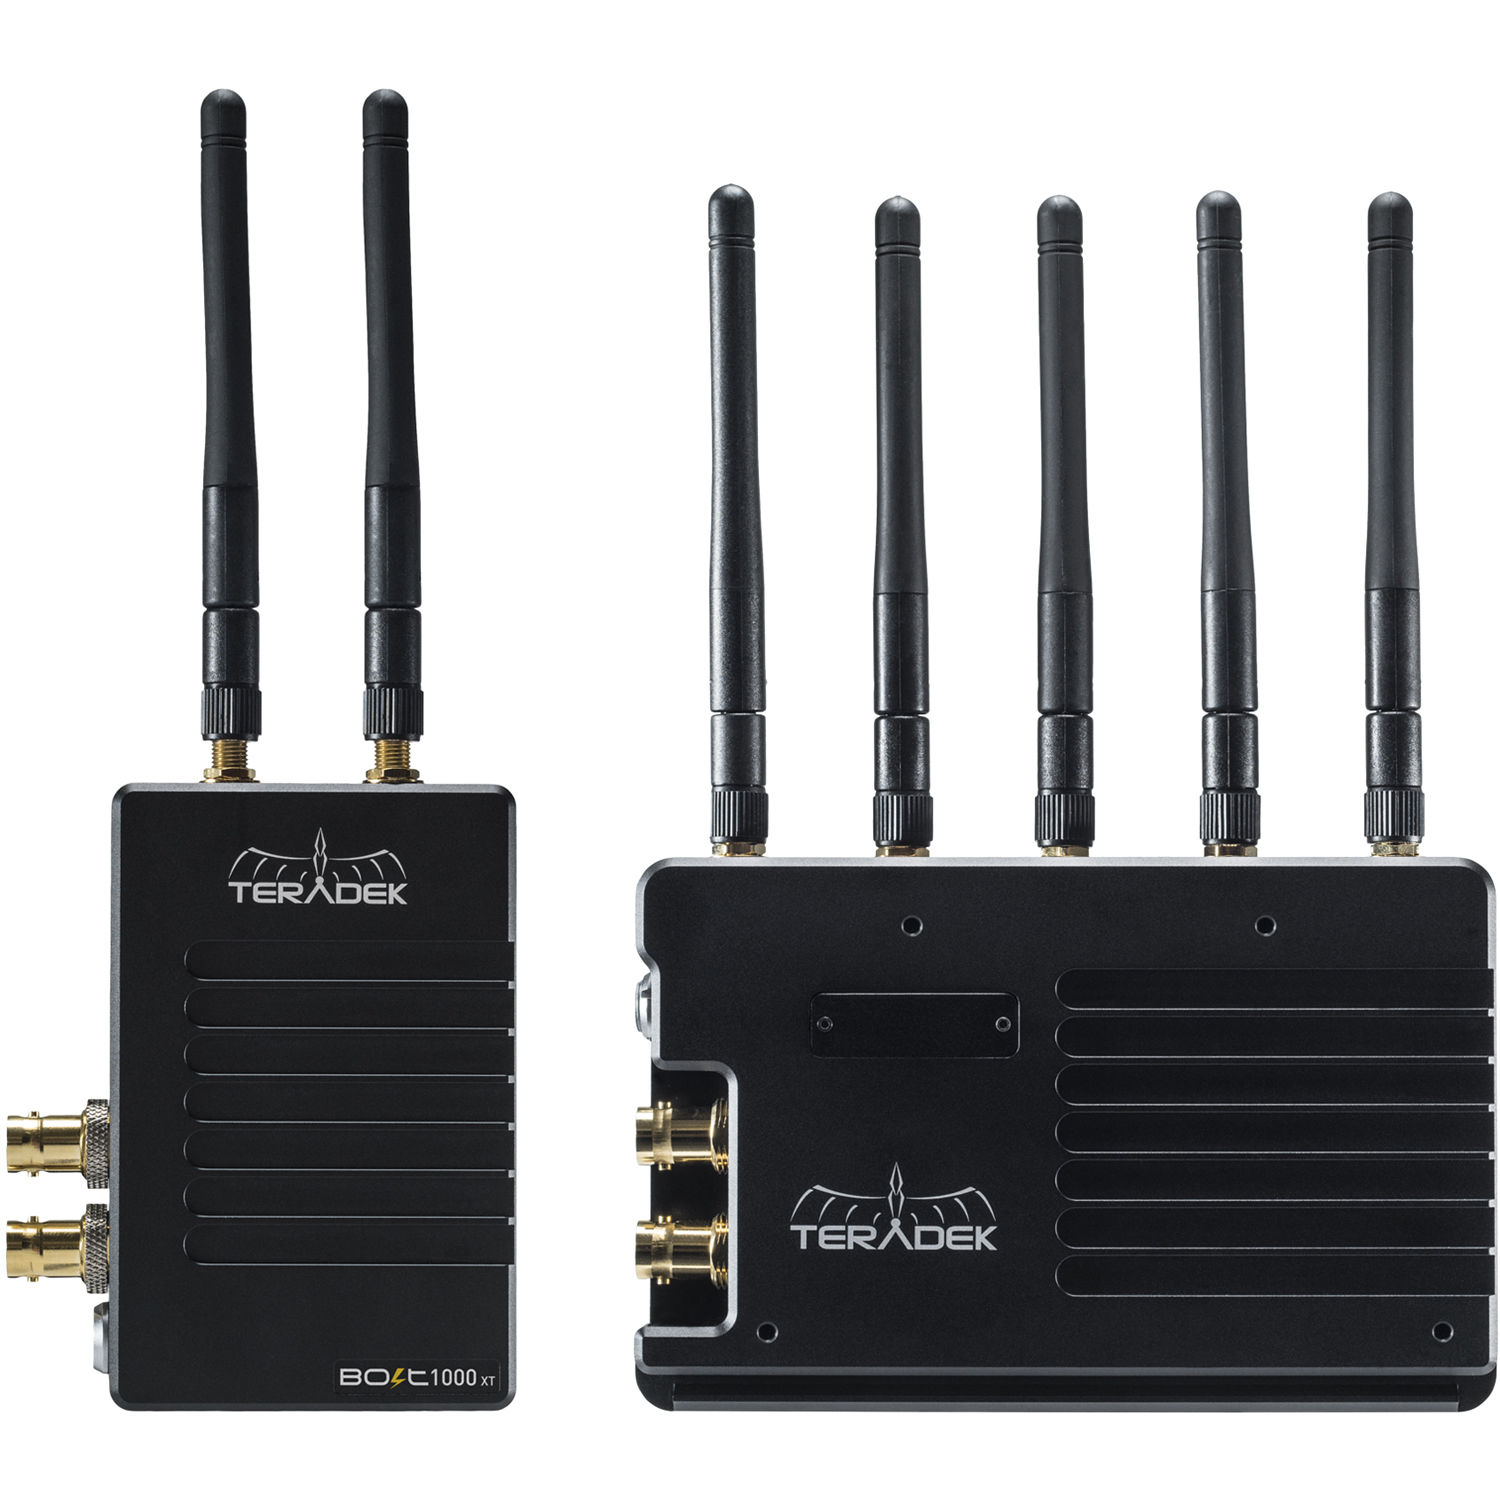 Bolt 1000 XT 3G-SDI/HDMI Wireless Transmitter and Receiver Set